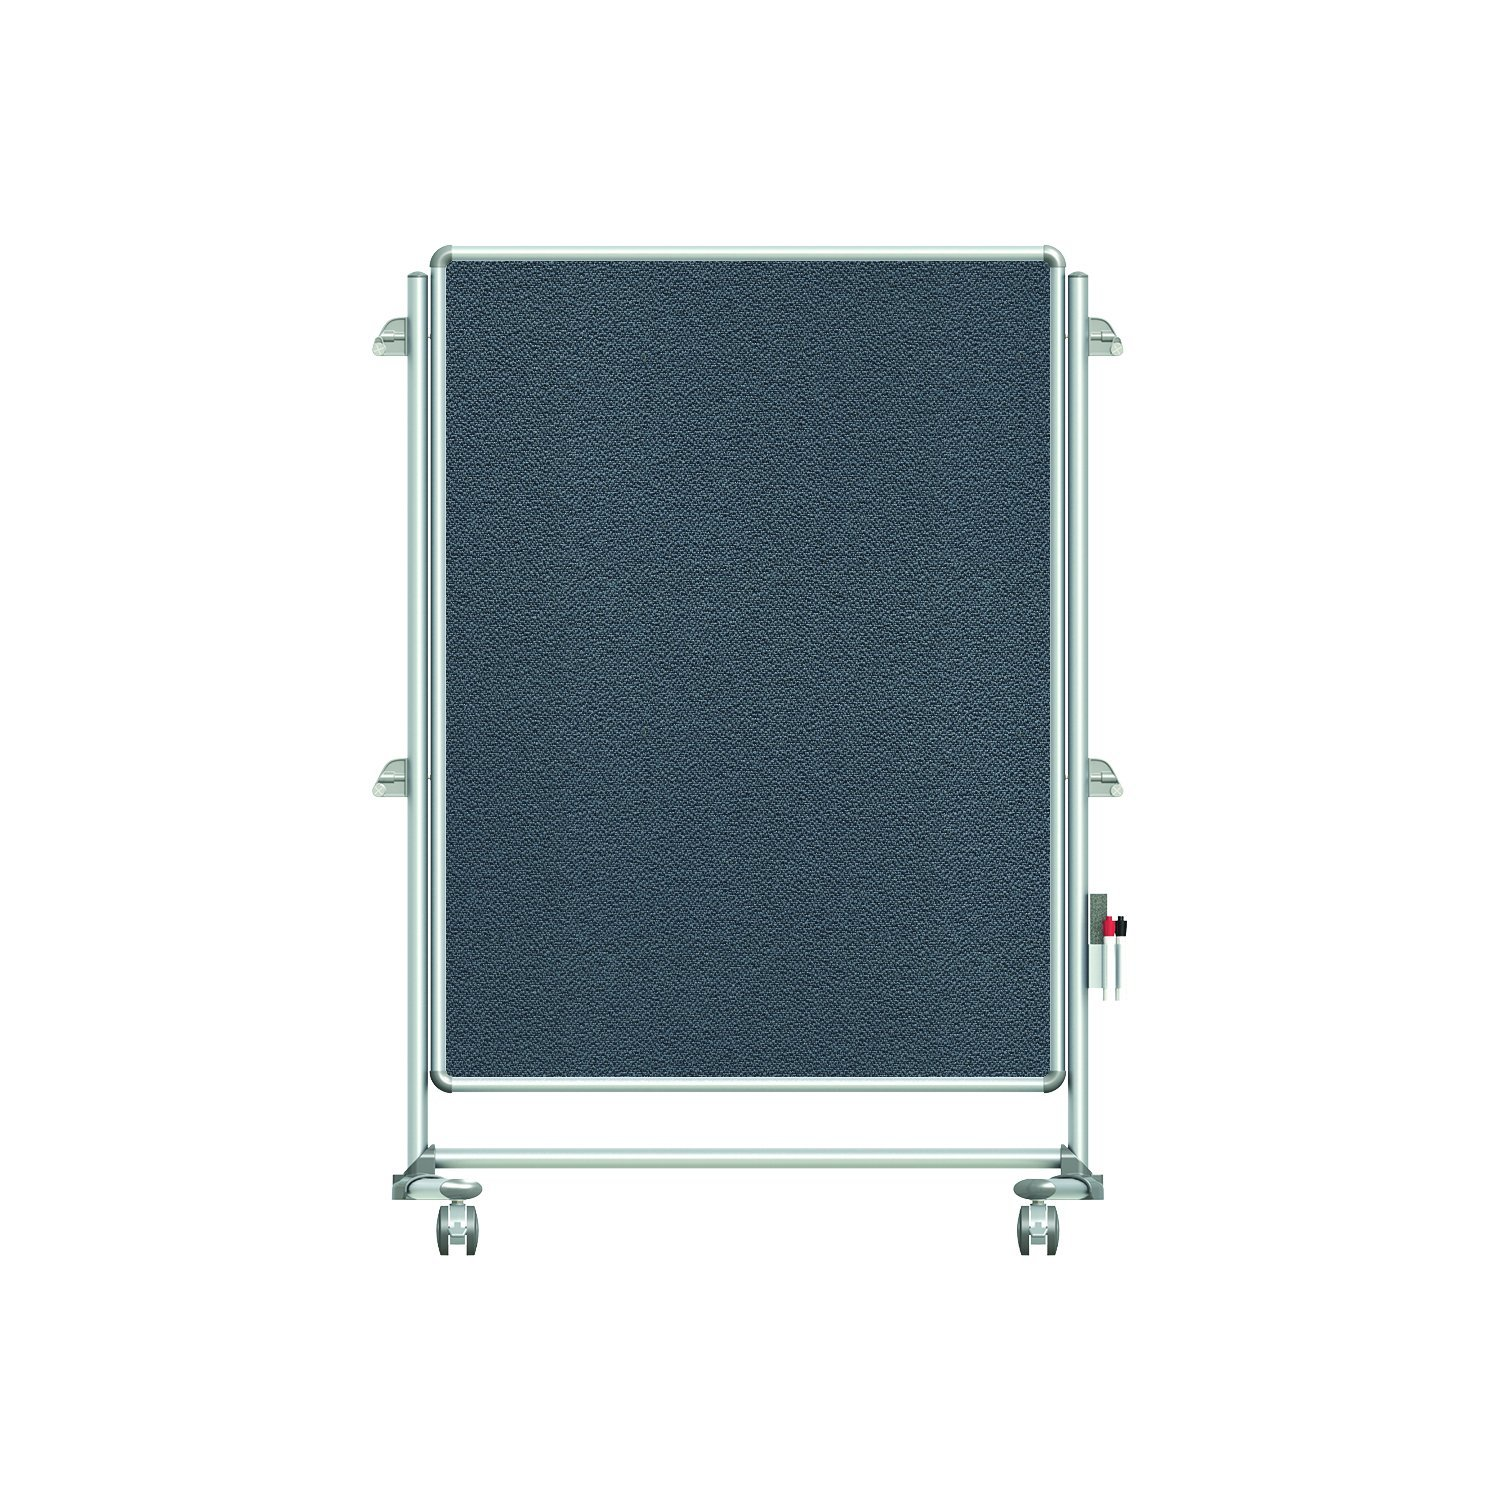 "Ghent 57-3/8"" x 40-3/8"" Nexus Jr. Partition Mobile Fabric Bulletin Board, Double-Sided, Gray (NEX223FFP-91)"